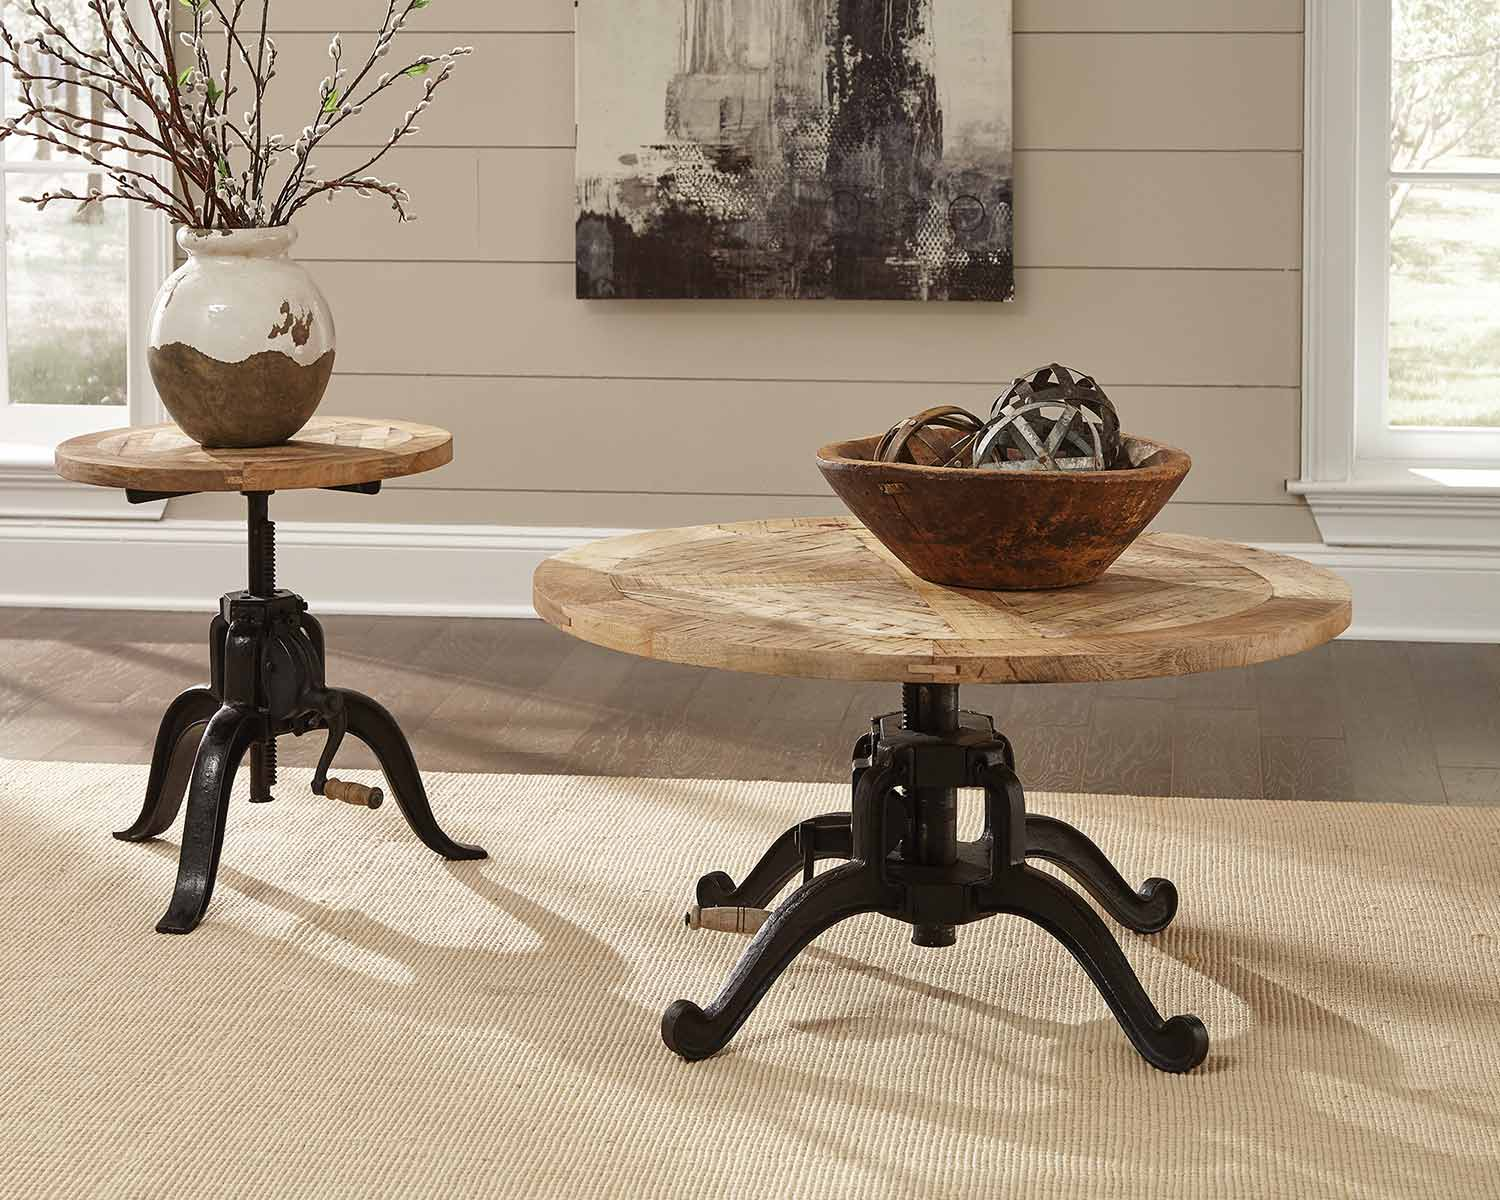 Coaster Brownswood Coffee Table Set - Natural Wood